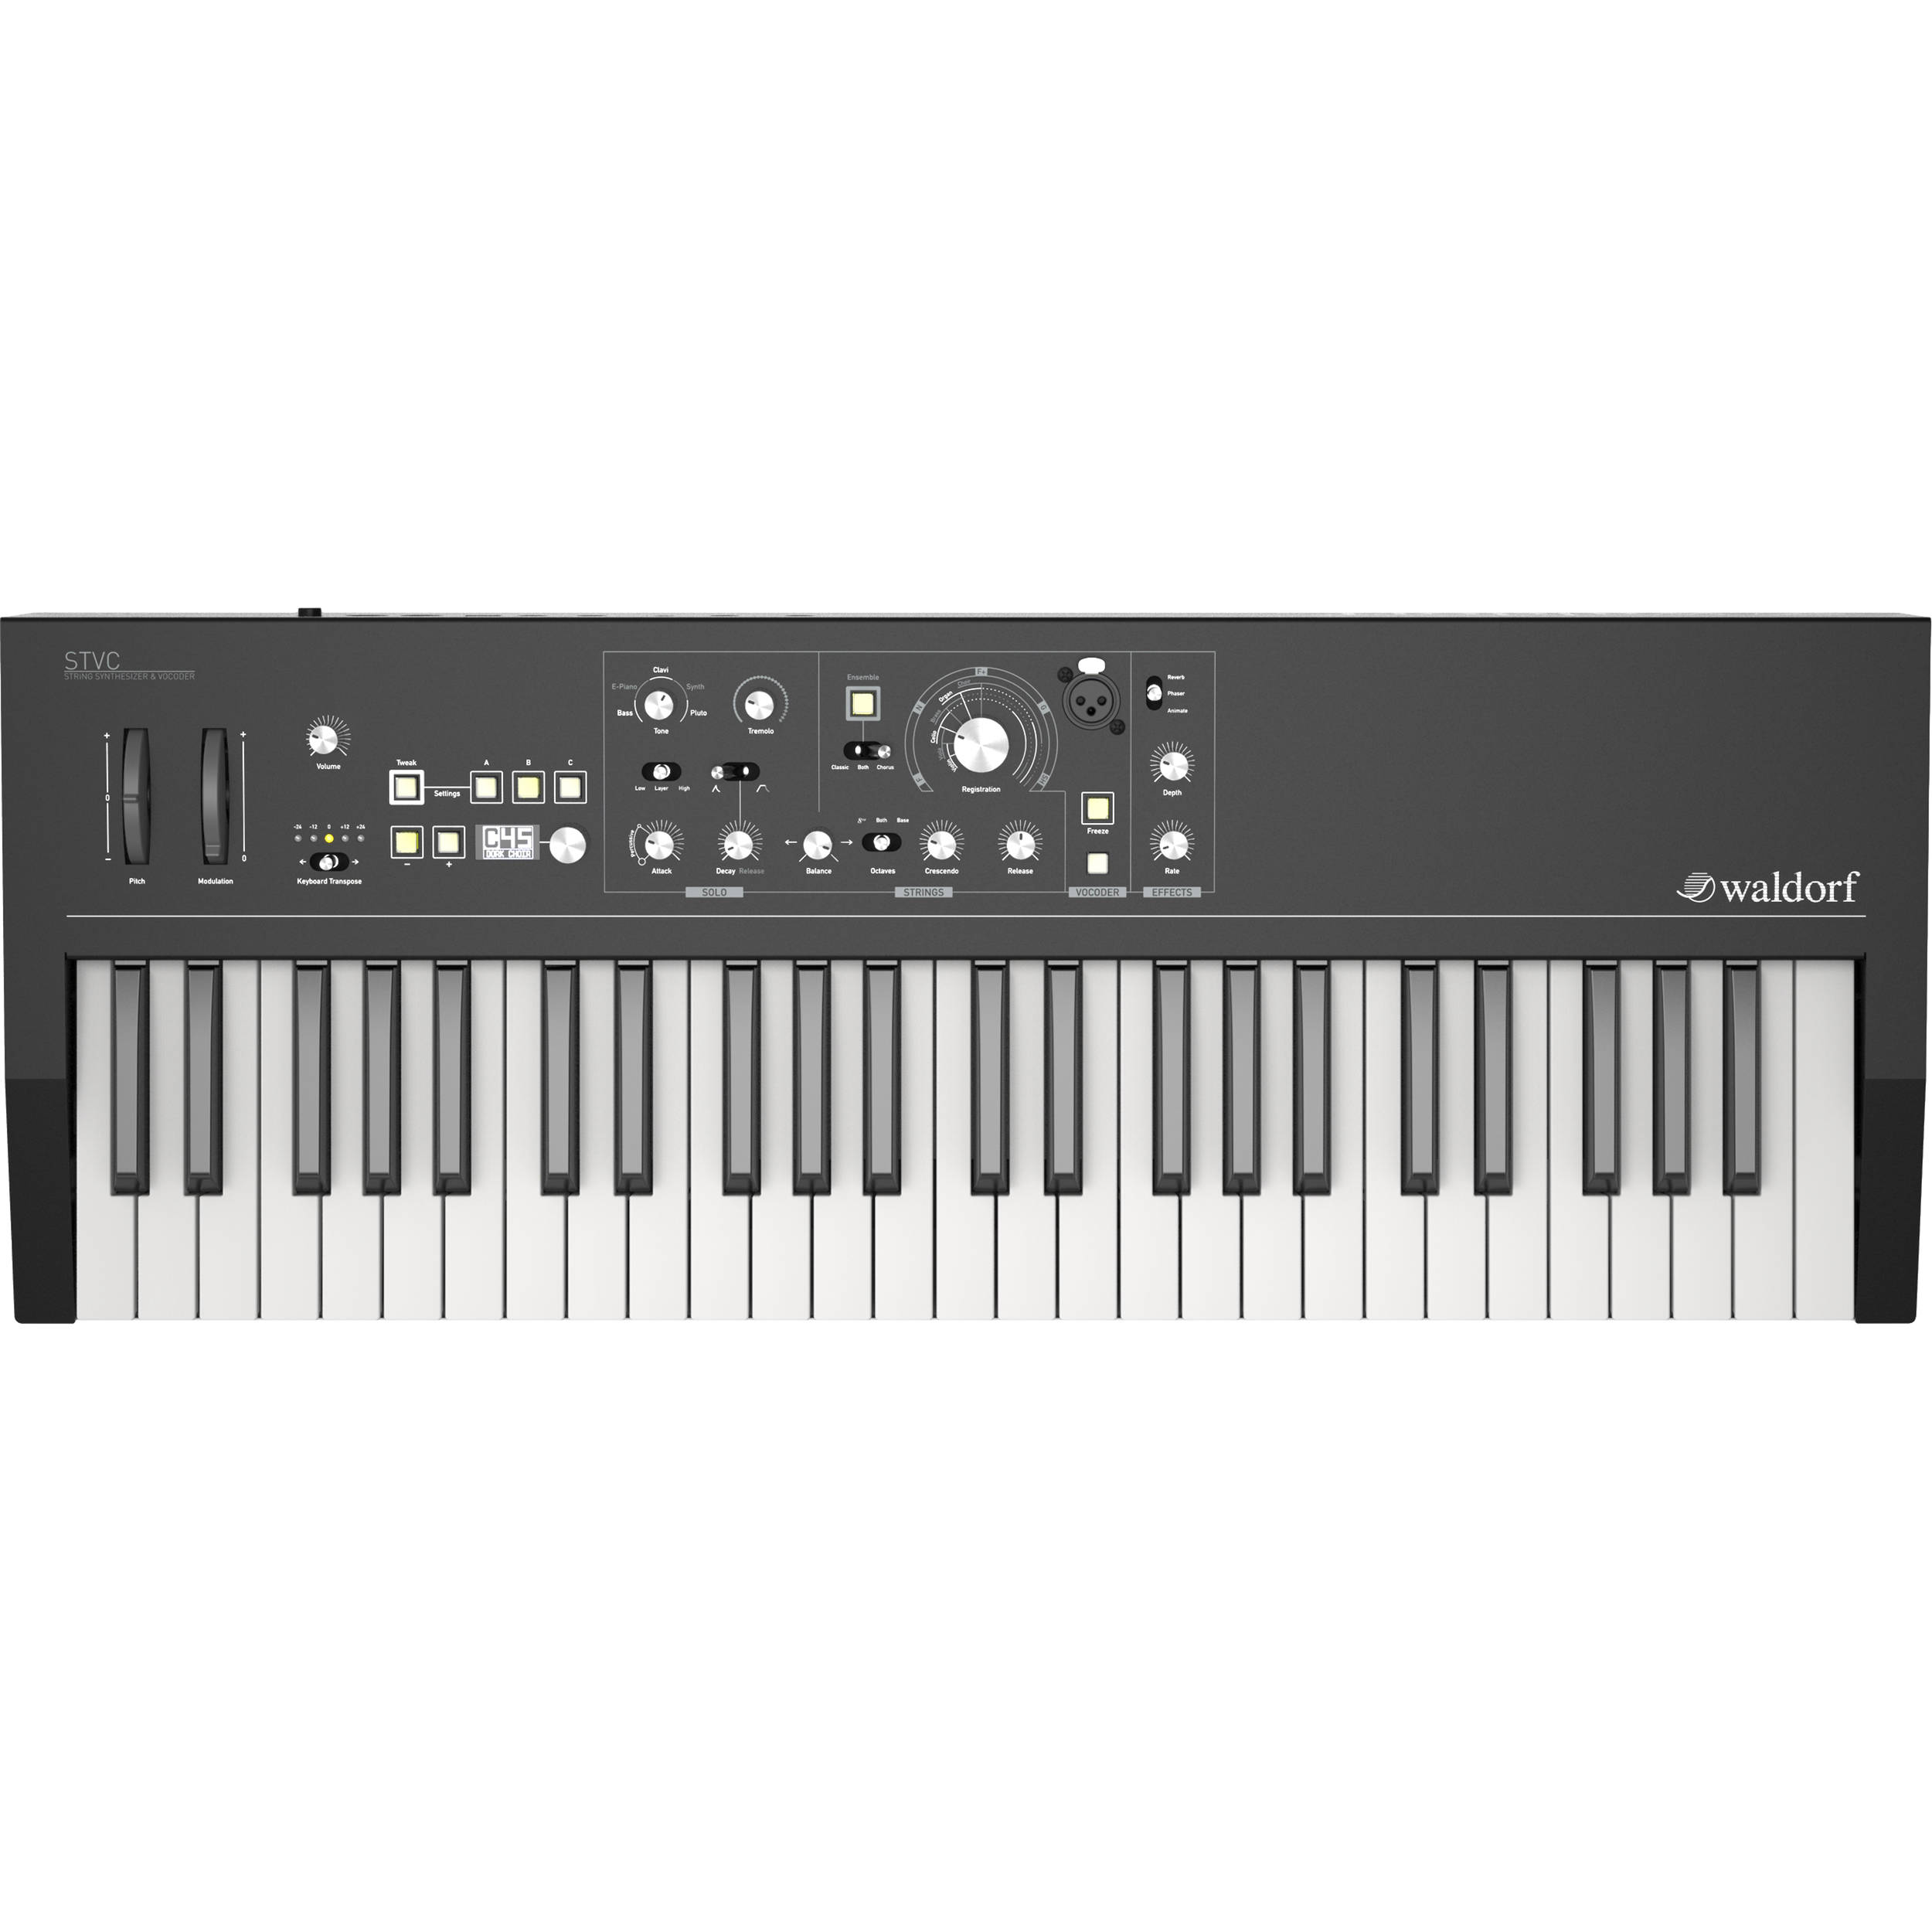 Waldorf STVC - String Synthesizer and Vocoder